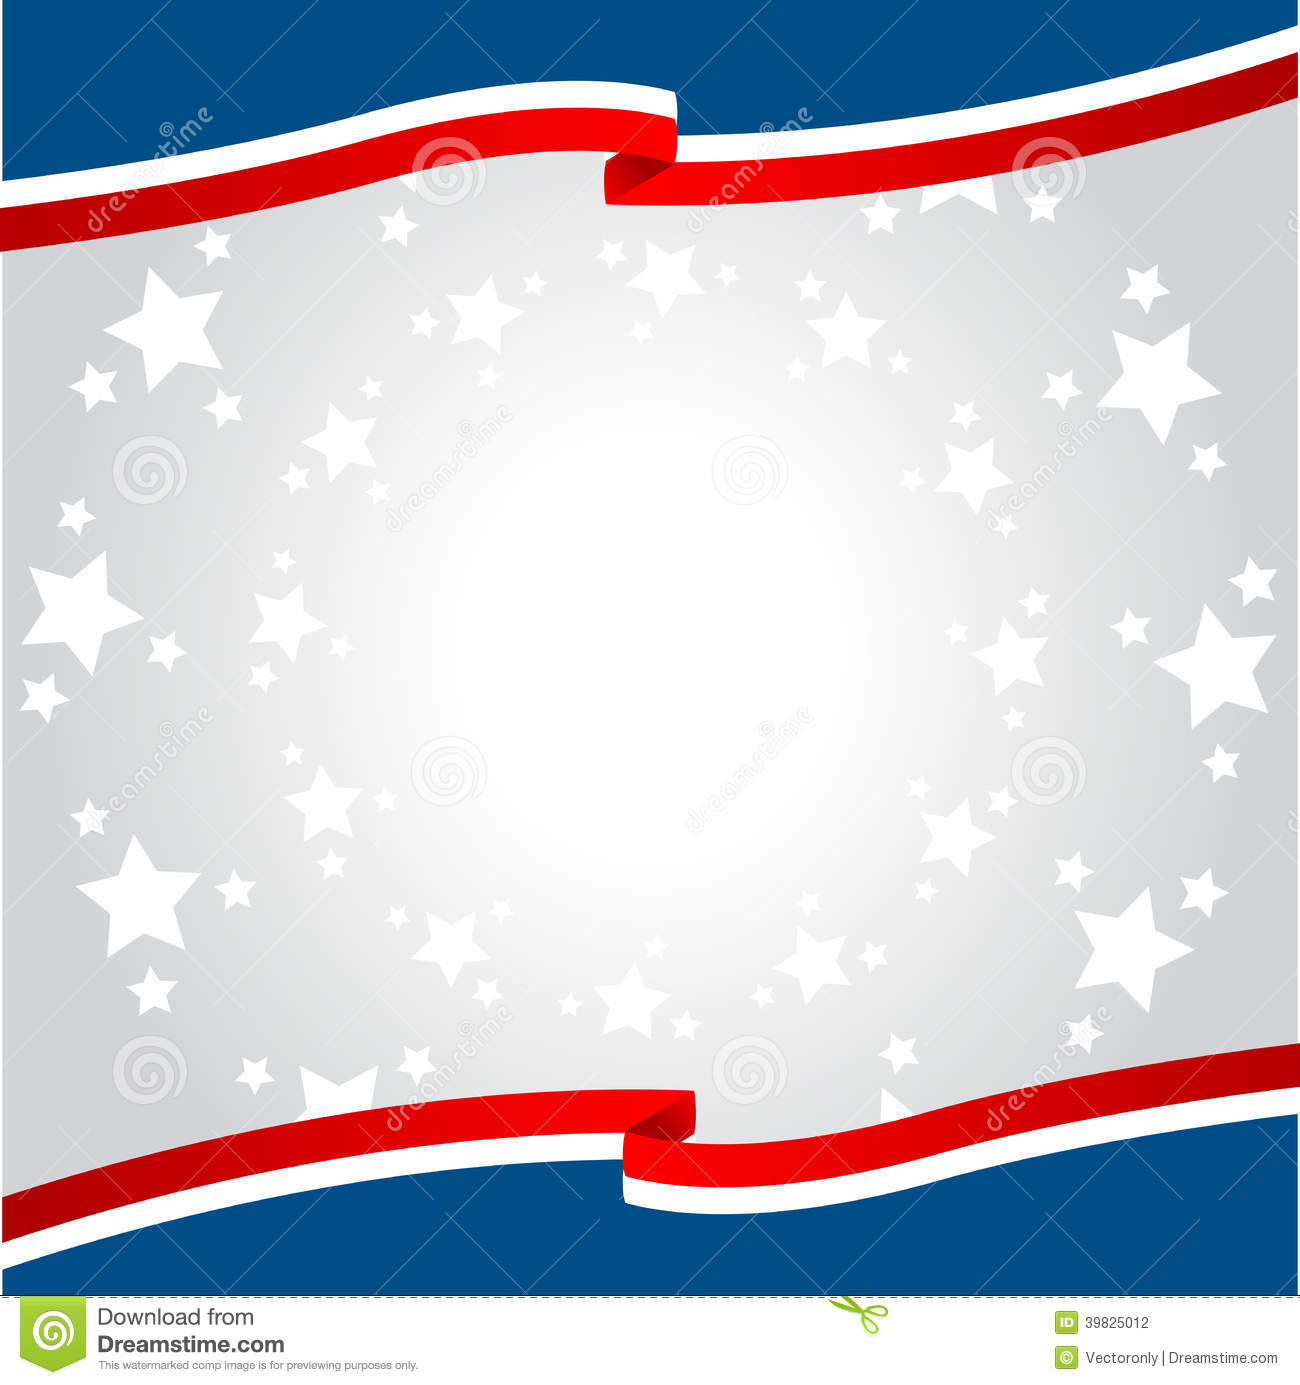 Blue and red patriotic stars and stripes page border frame design - Patriotic Background Stock Vector Image 39825012